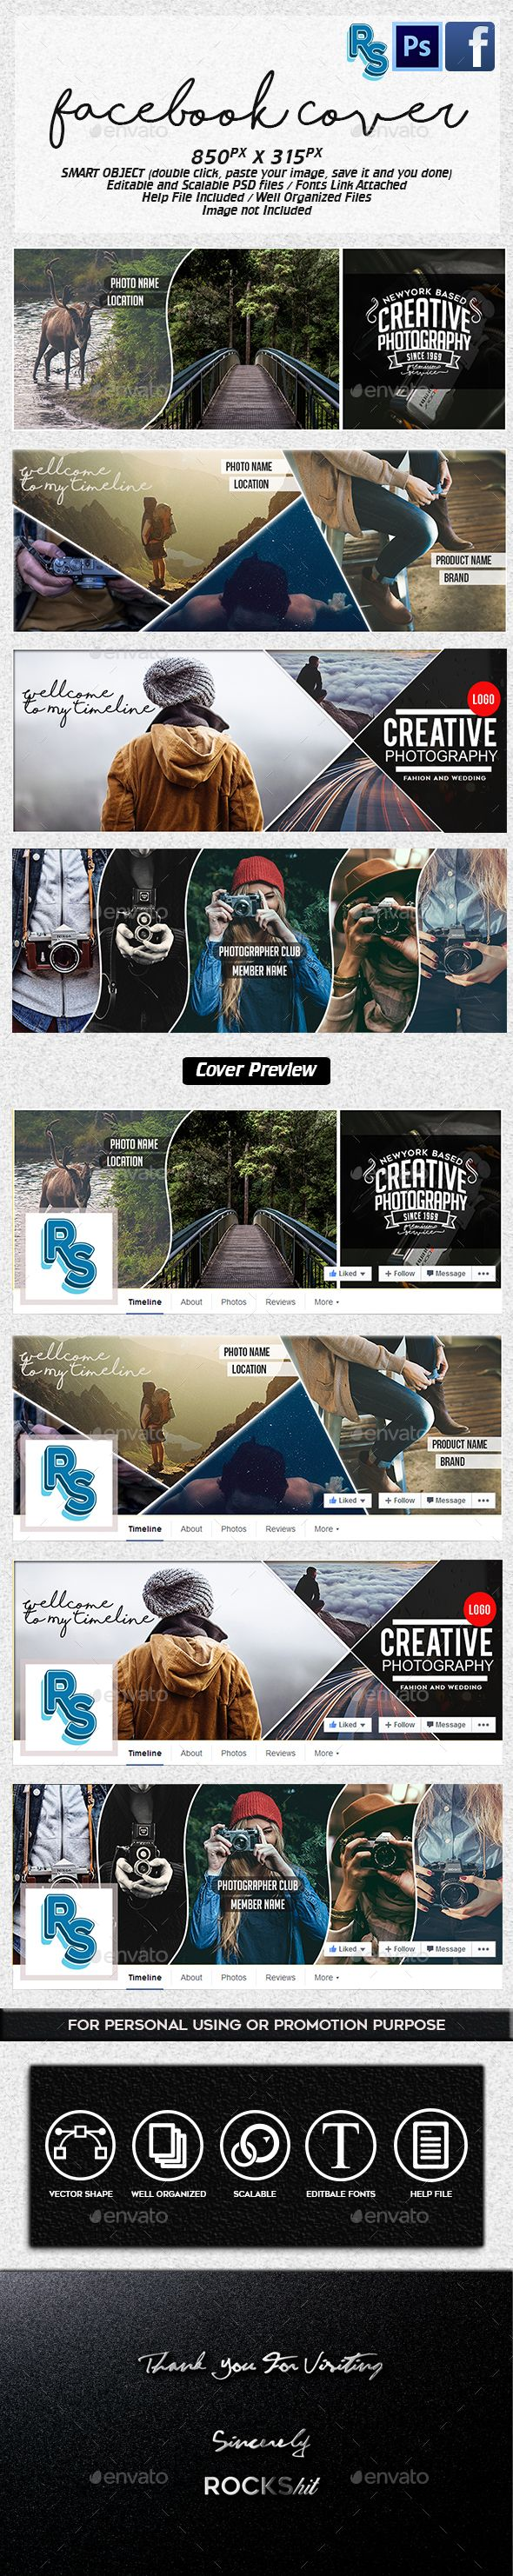 Facebook Photography Cover Templates PSD. Download here: http://graphicriver.net/item/facebook-photography/16027489?ref=ksioks